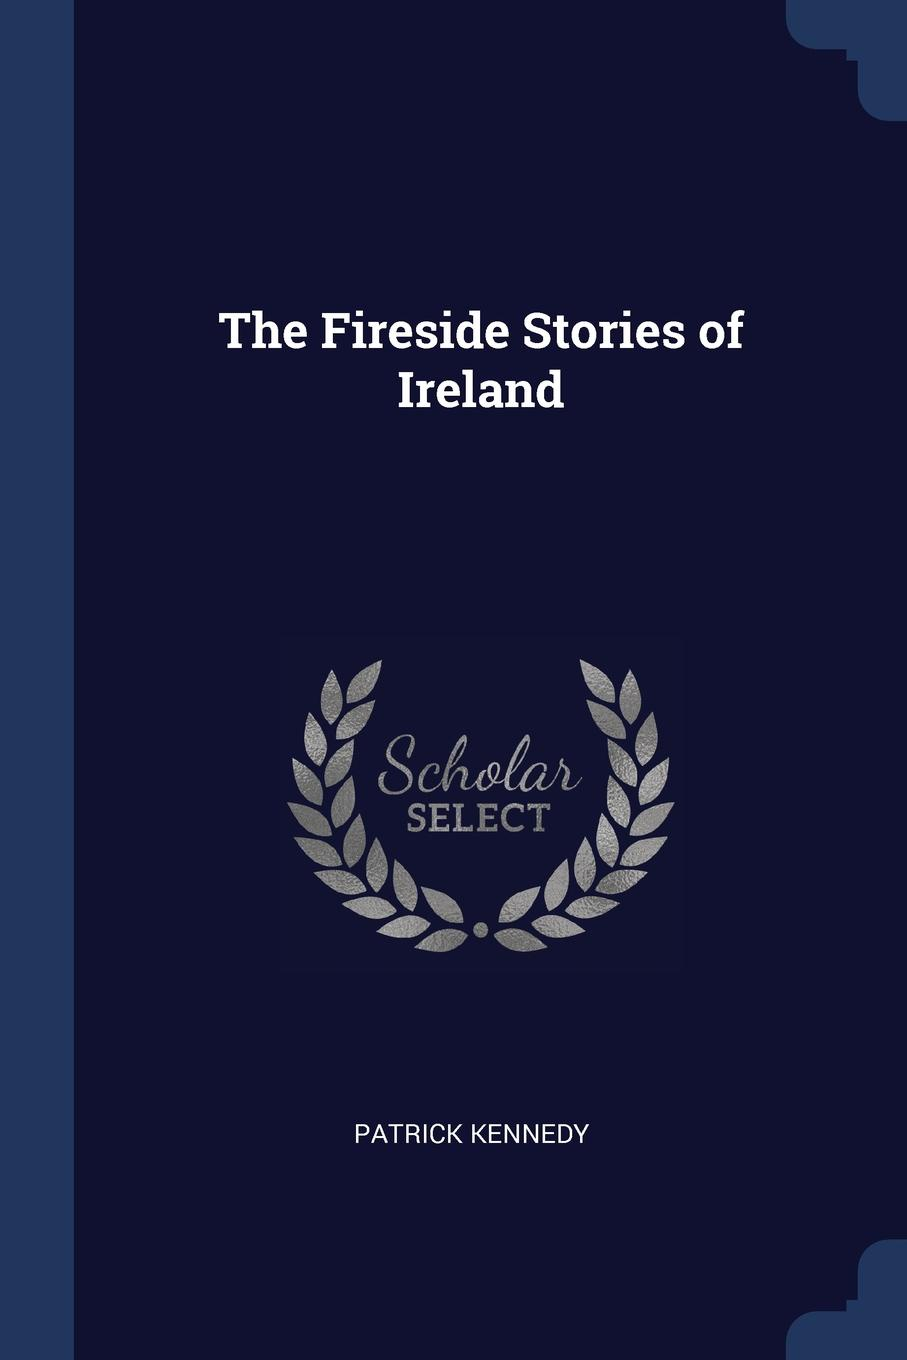 The Fireside Stories of Ireland. Patrick Kennedy